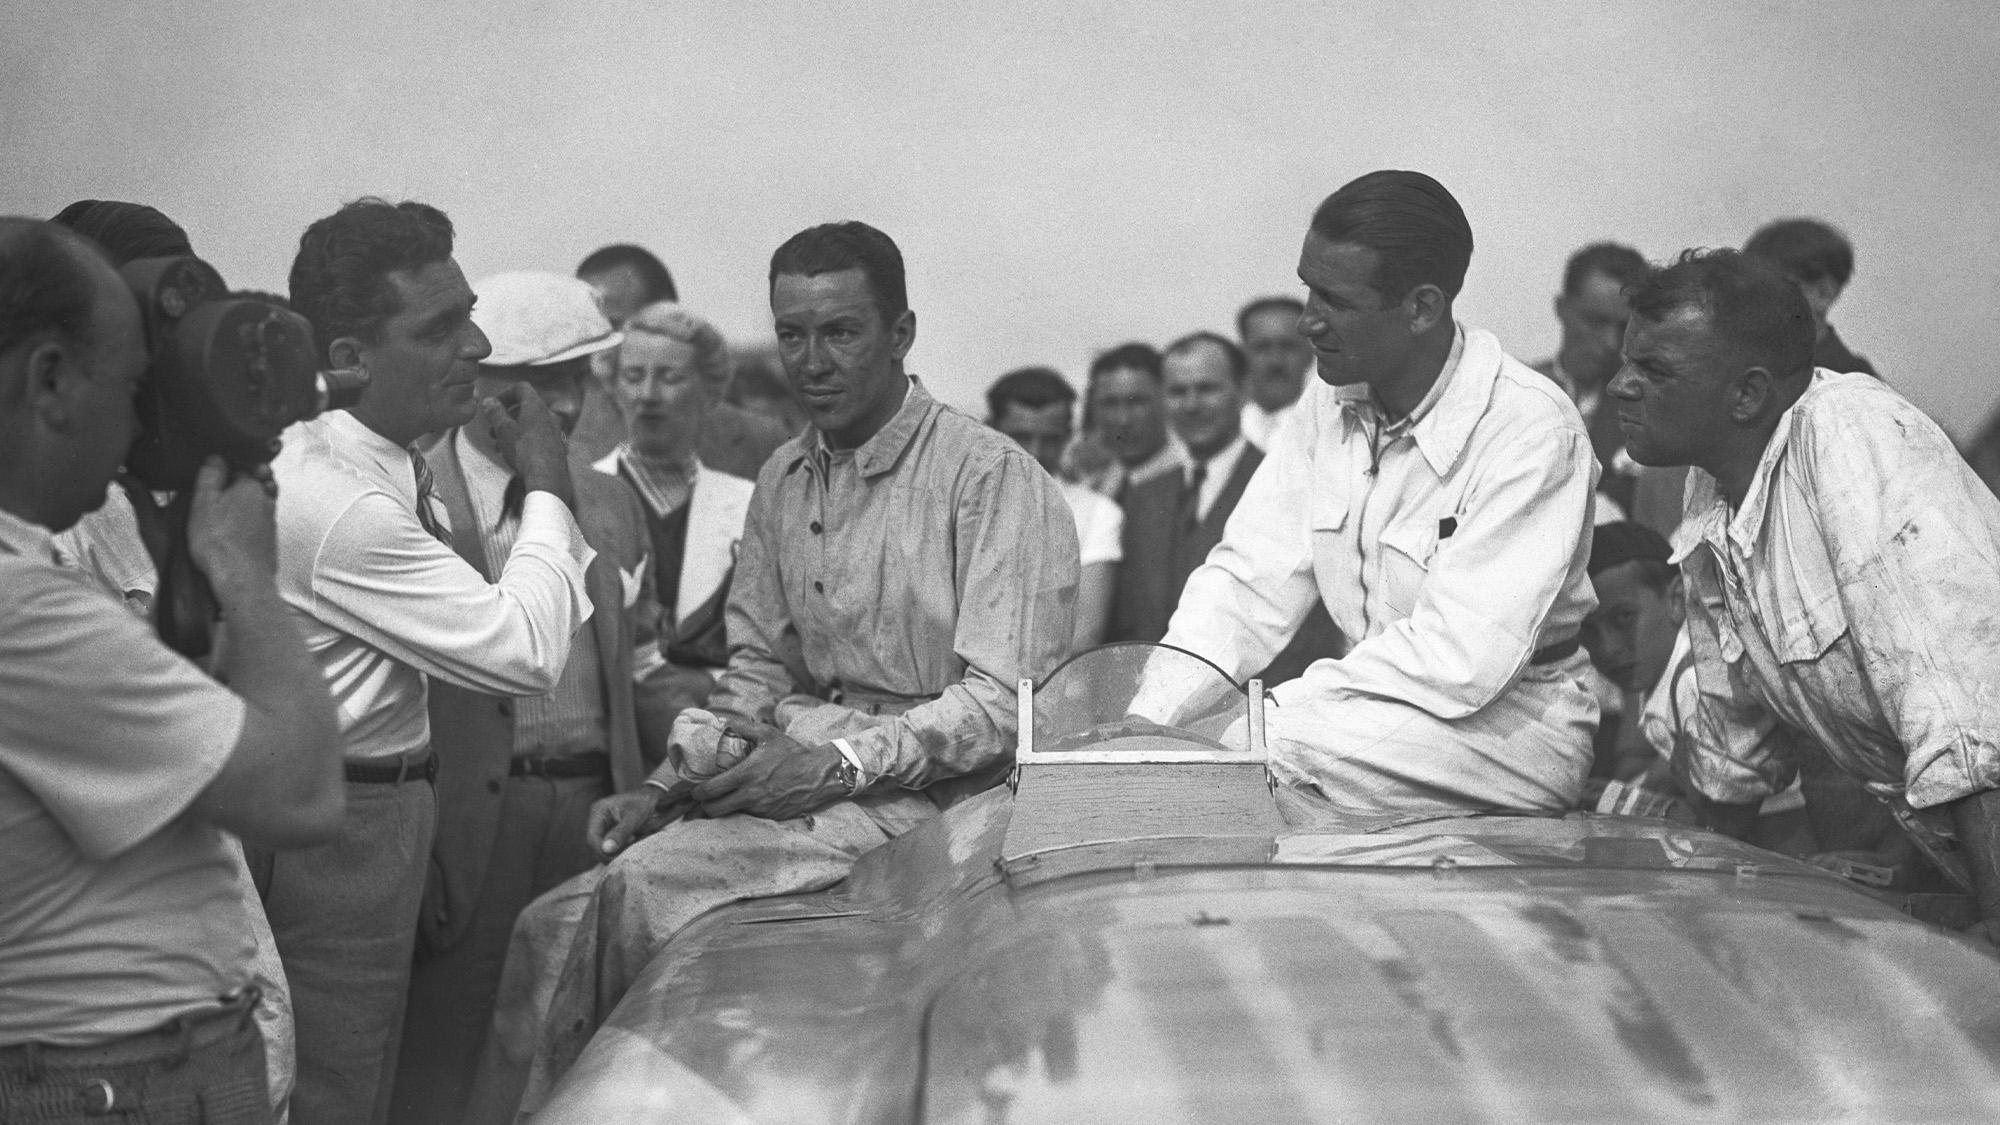 Jean-Pierre Wimille and Raymond Sommer after winning at Montlhery in 1936